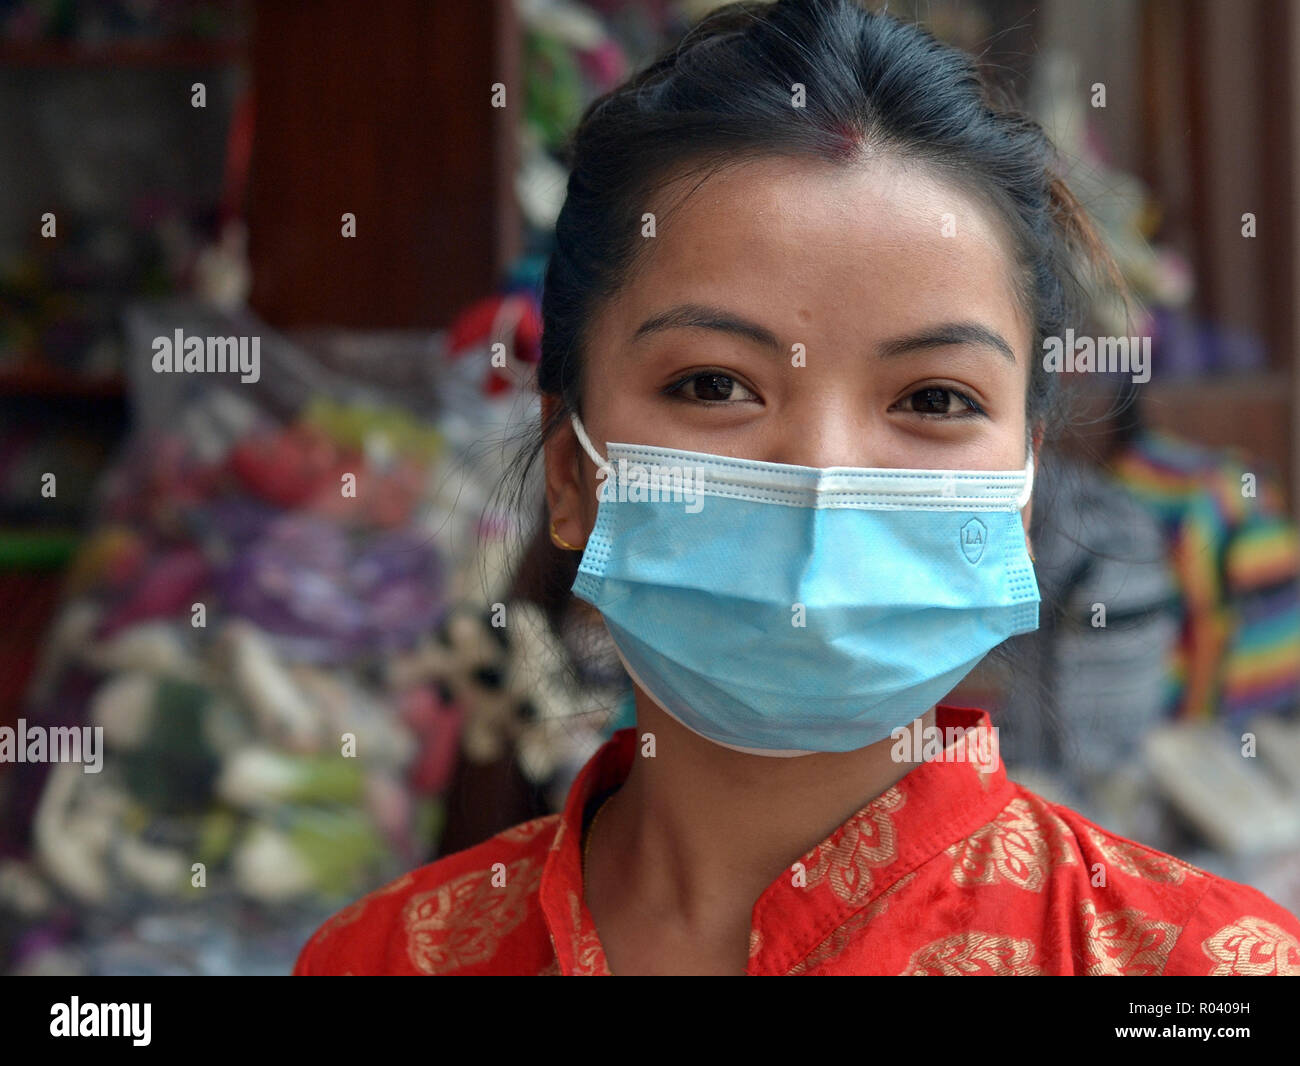 Young Nepali woman with beautiful eyes wears a light-blue disposable surgical earlobe face mask to protect herself against Kathmandu's air pollution. - Stock Image